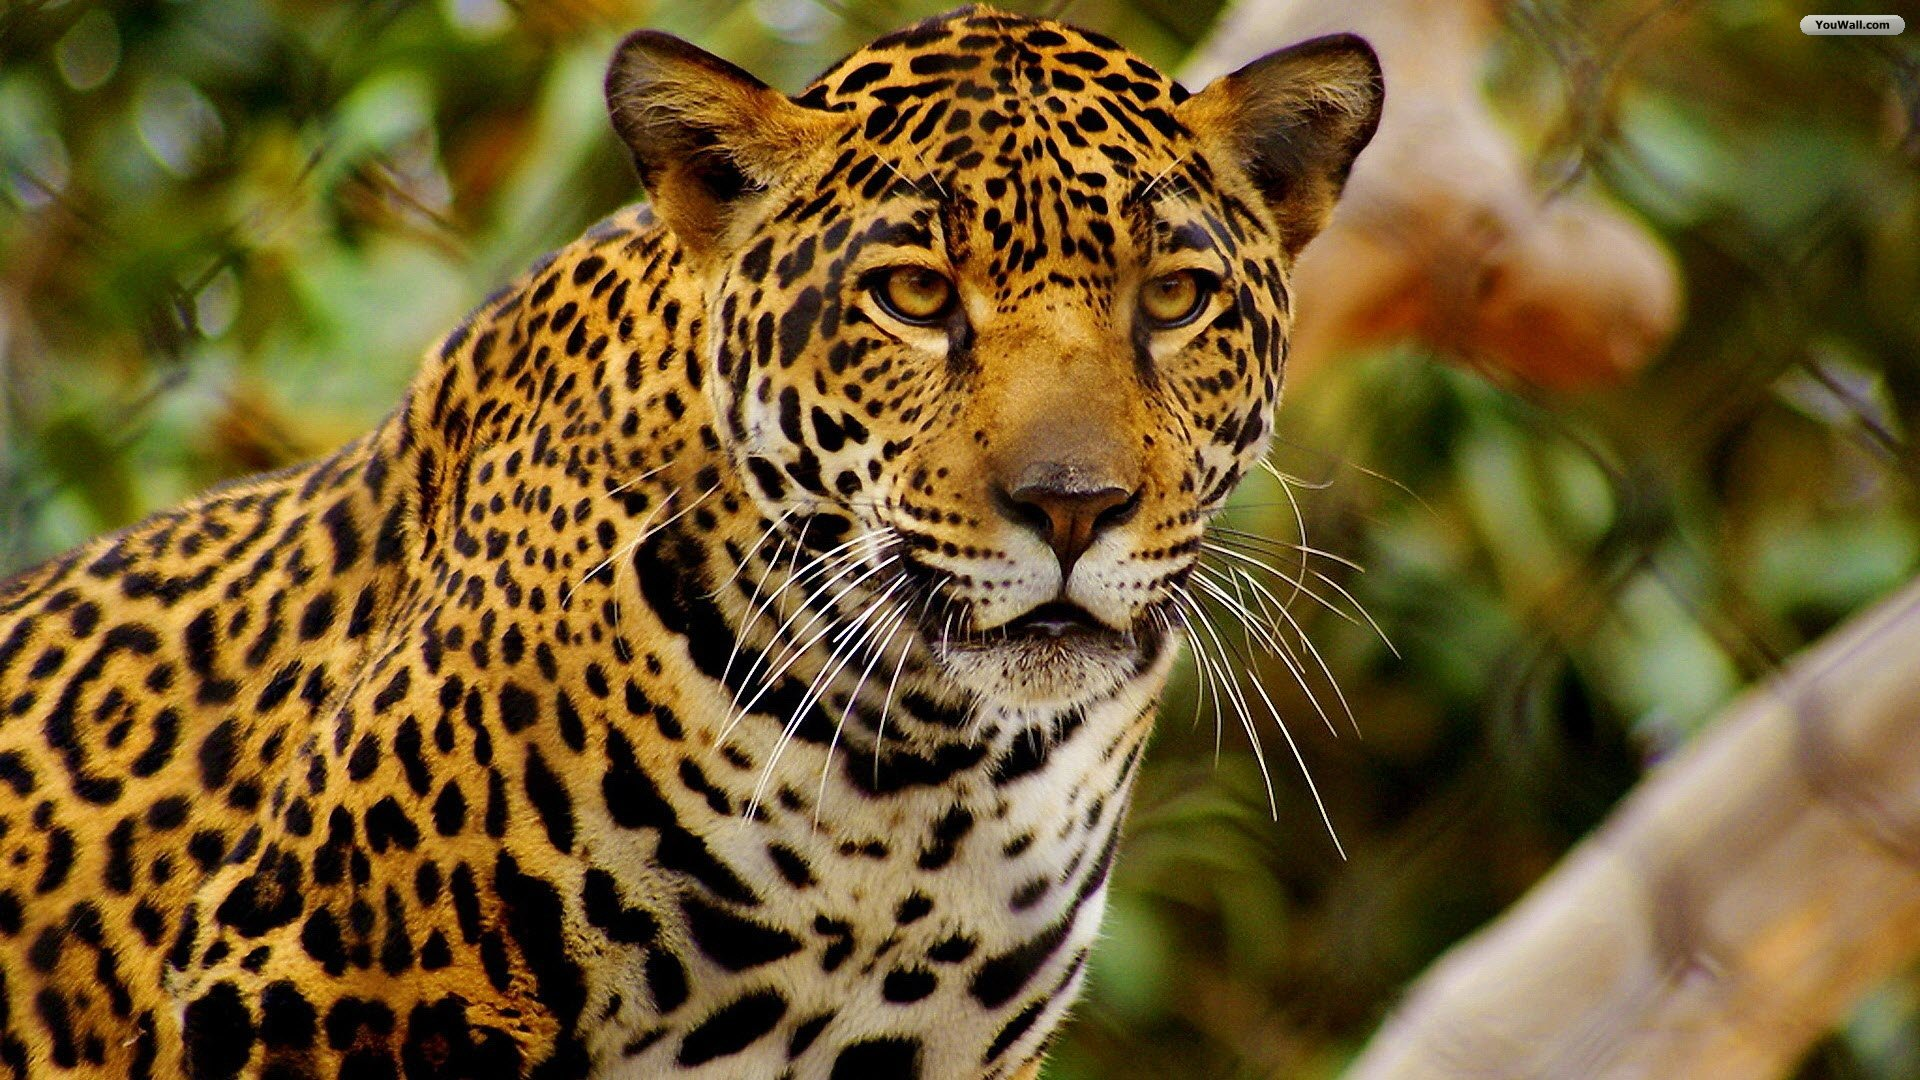 Wallpaper Jaguar 1920x1080